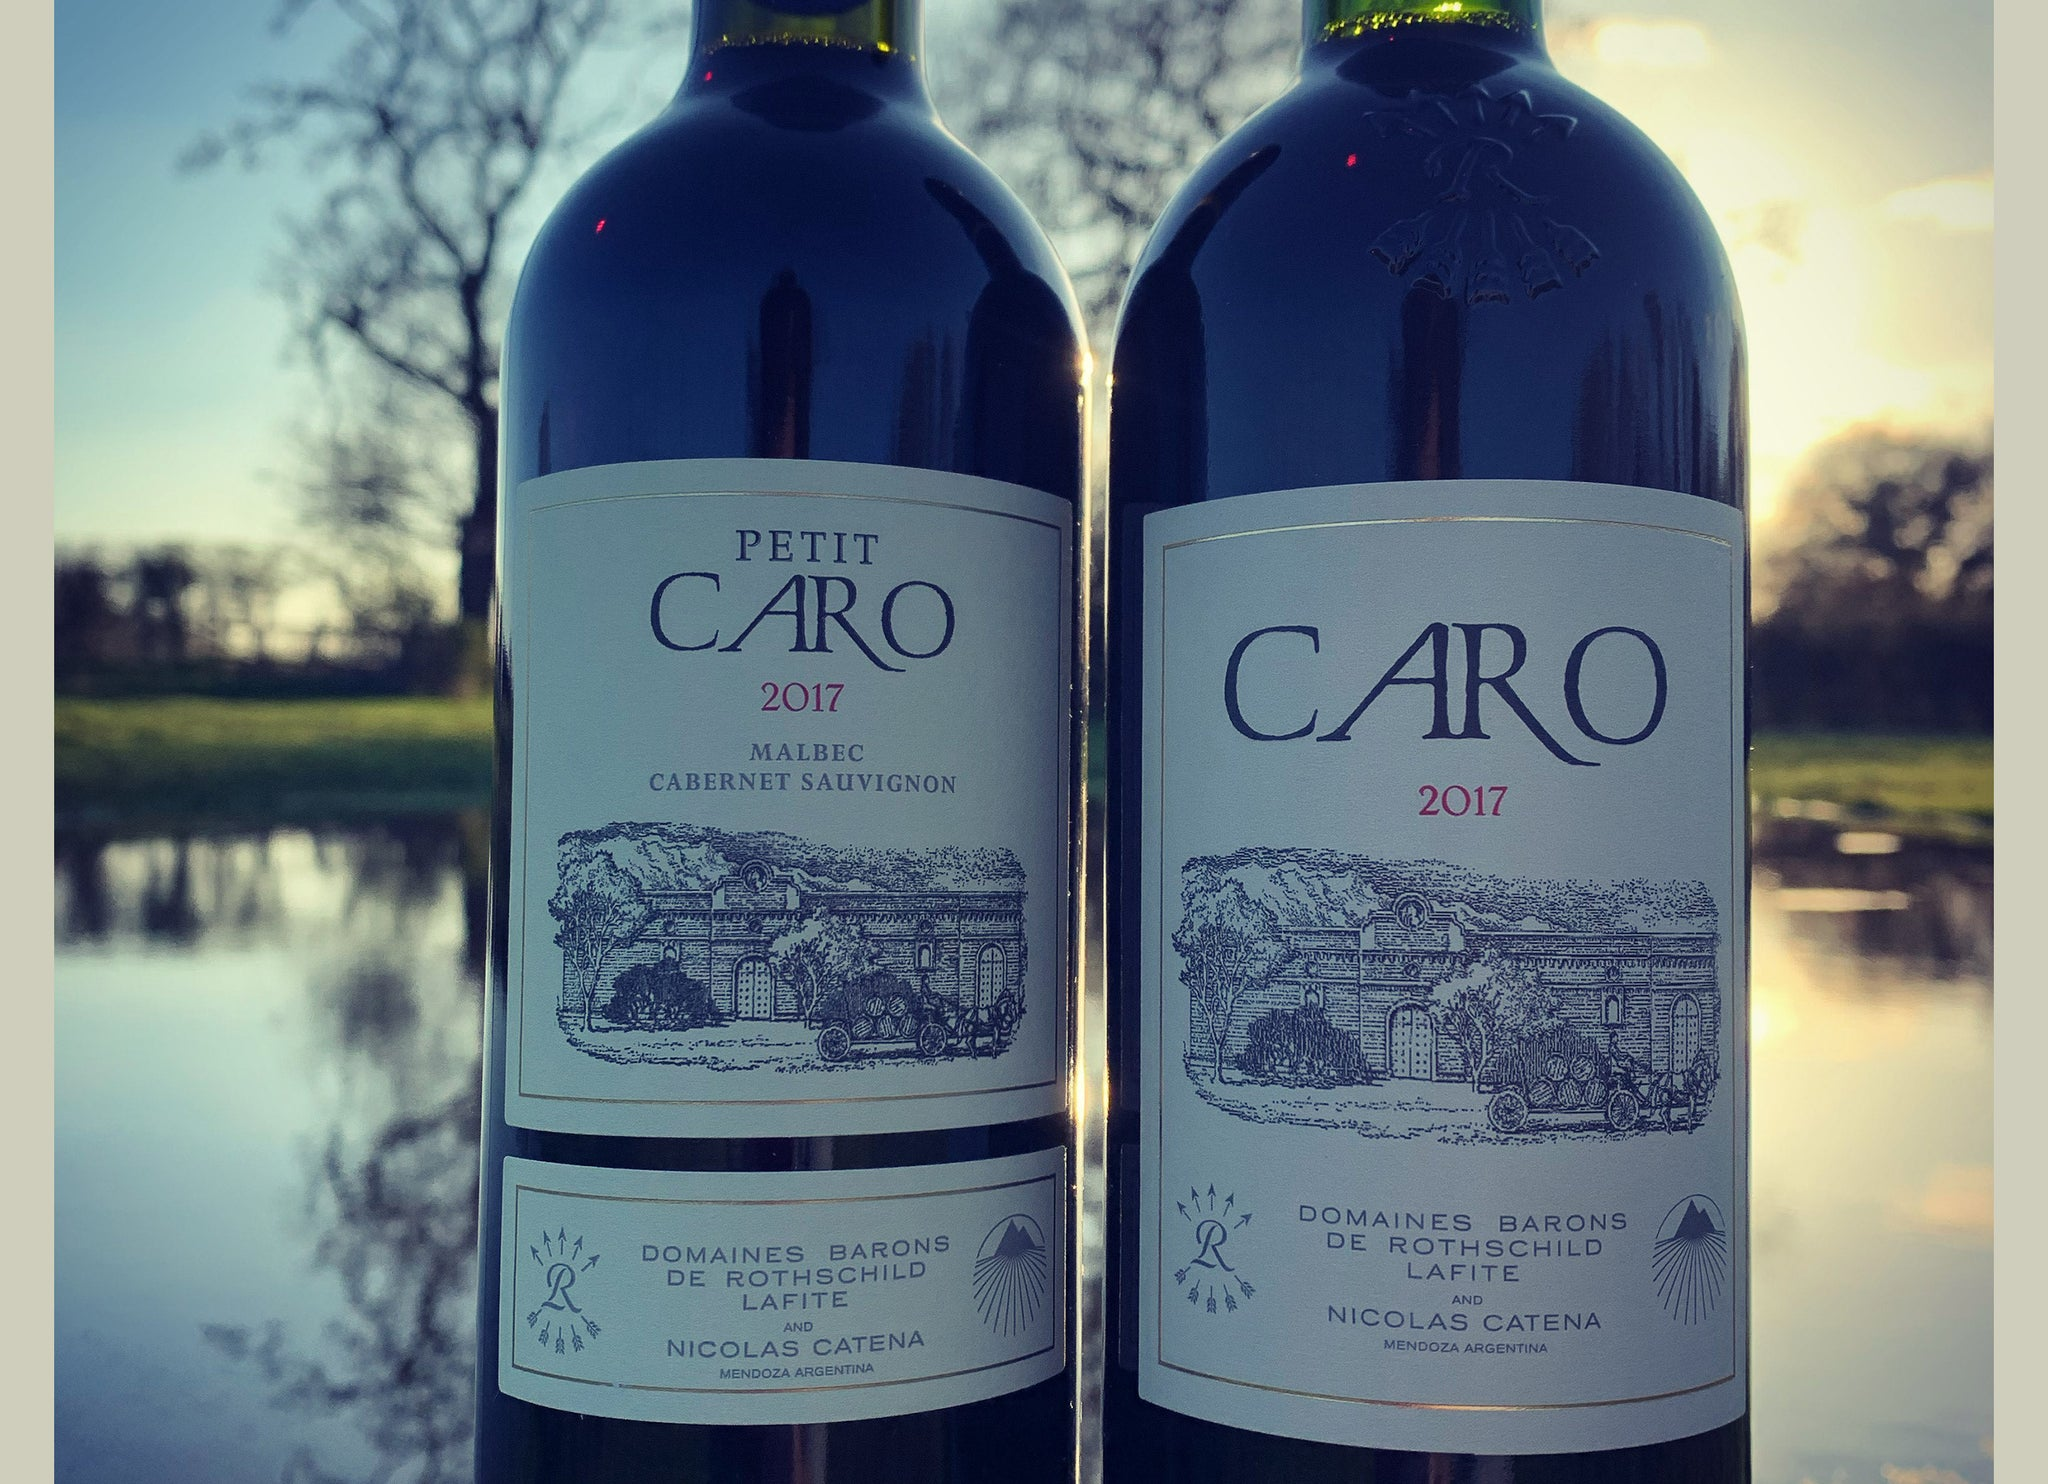 Bodegas CARO wines are now in stock...